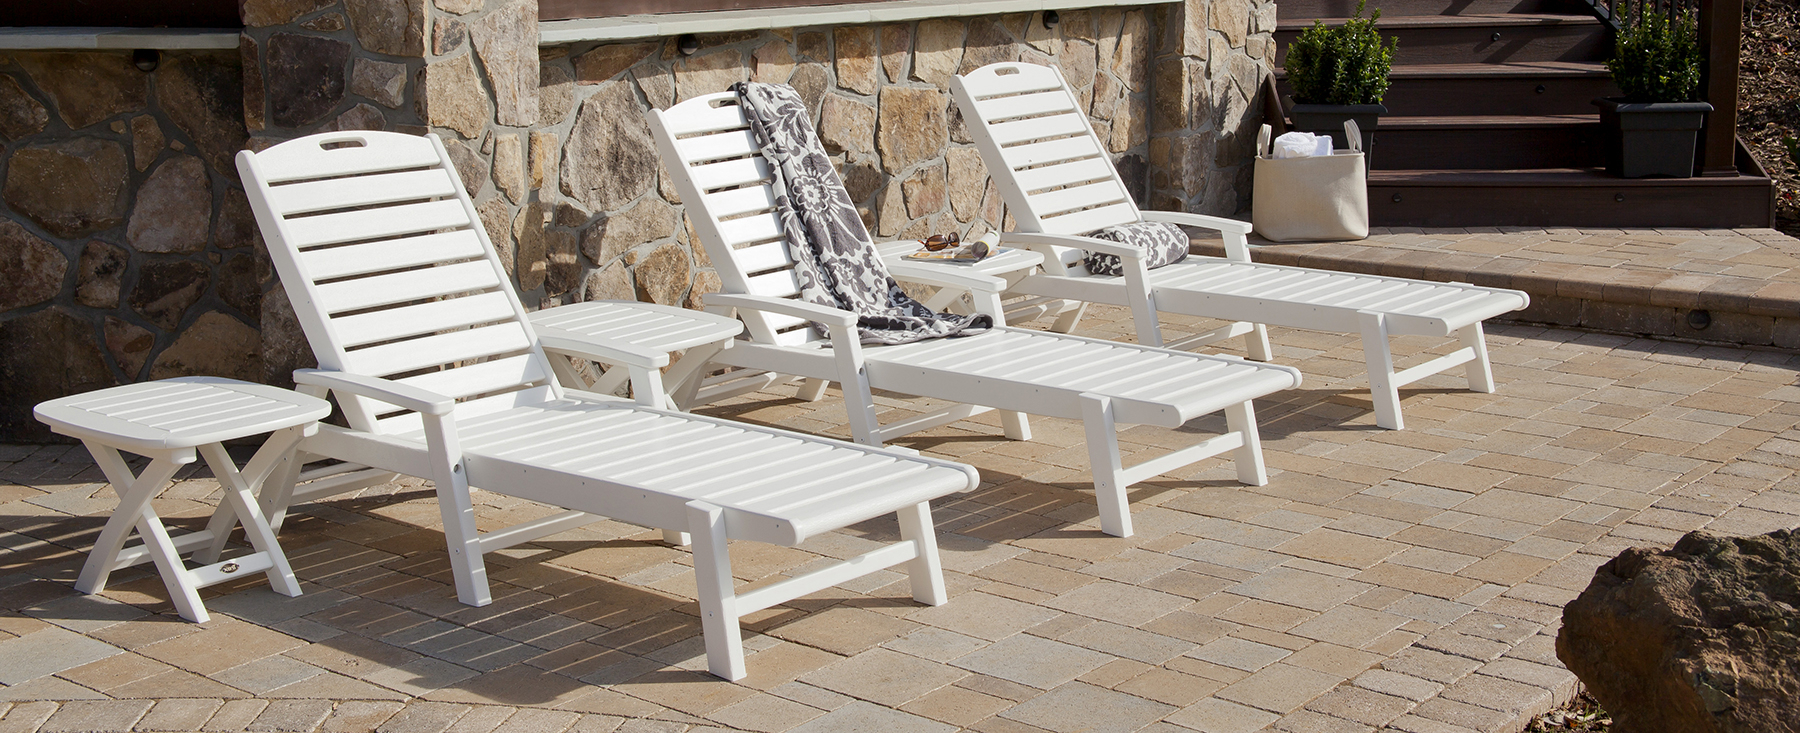 Aluminum Wheeled Chaise Lounges Regarding 2020 The Shopper's Guide To Buying An Outdoor Chaise Lounge (View 7 of 25)